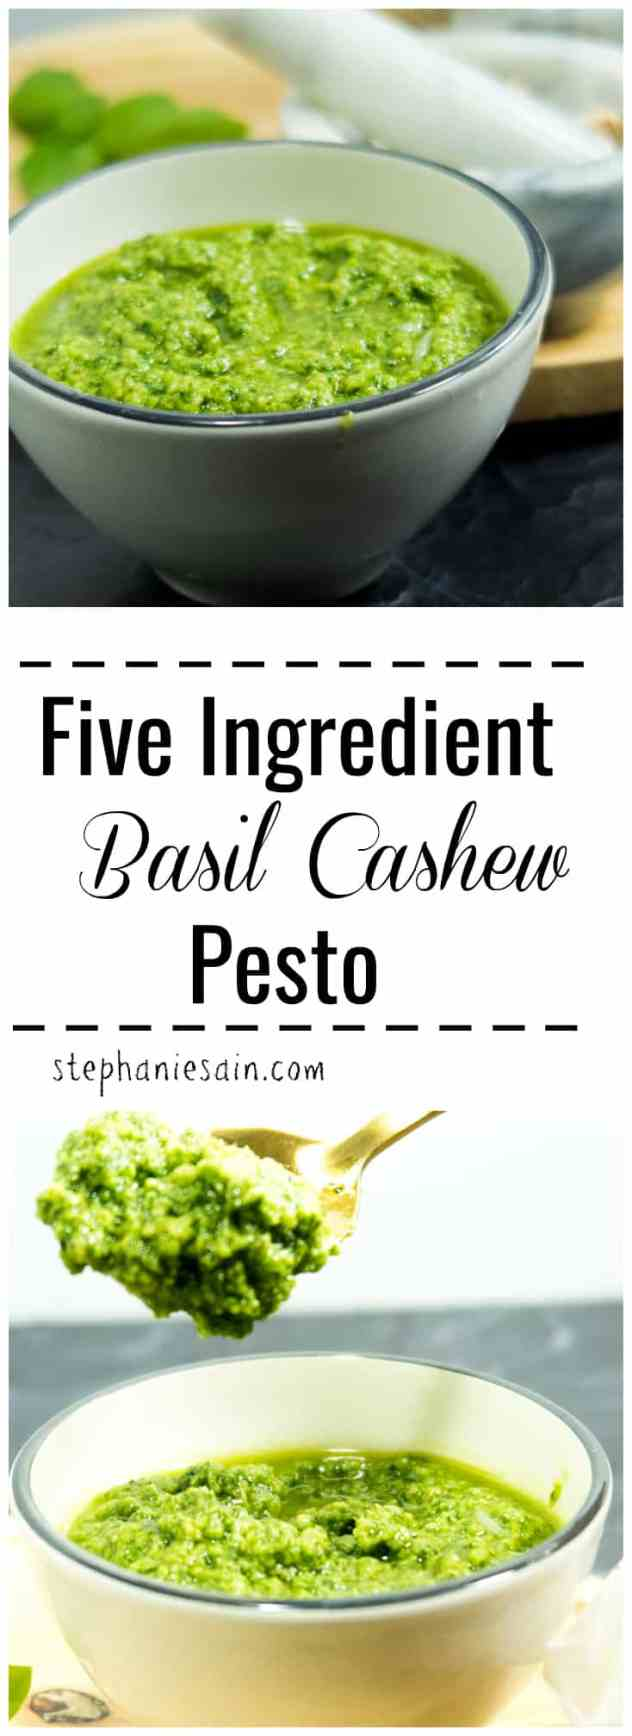 Five Ingredient Basil Cashew Pesto is ready in under 10 minutes. Fresh basil, cashews, & lots of garlic combined for a tasty flavorful pesto. Gluten free & Vegetarian.